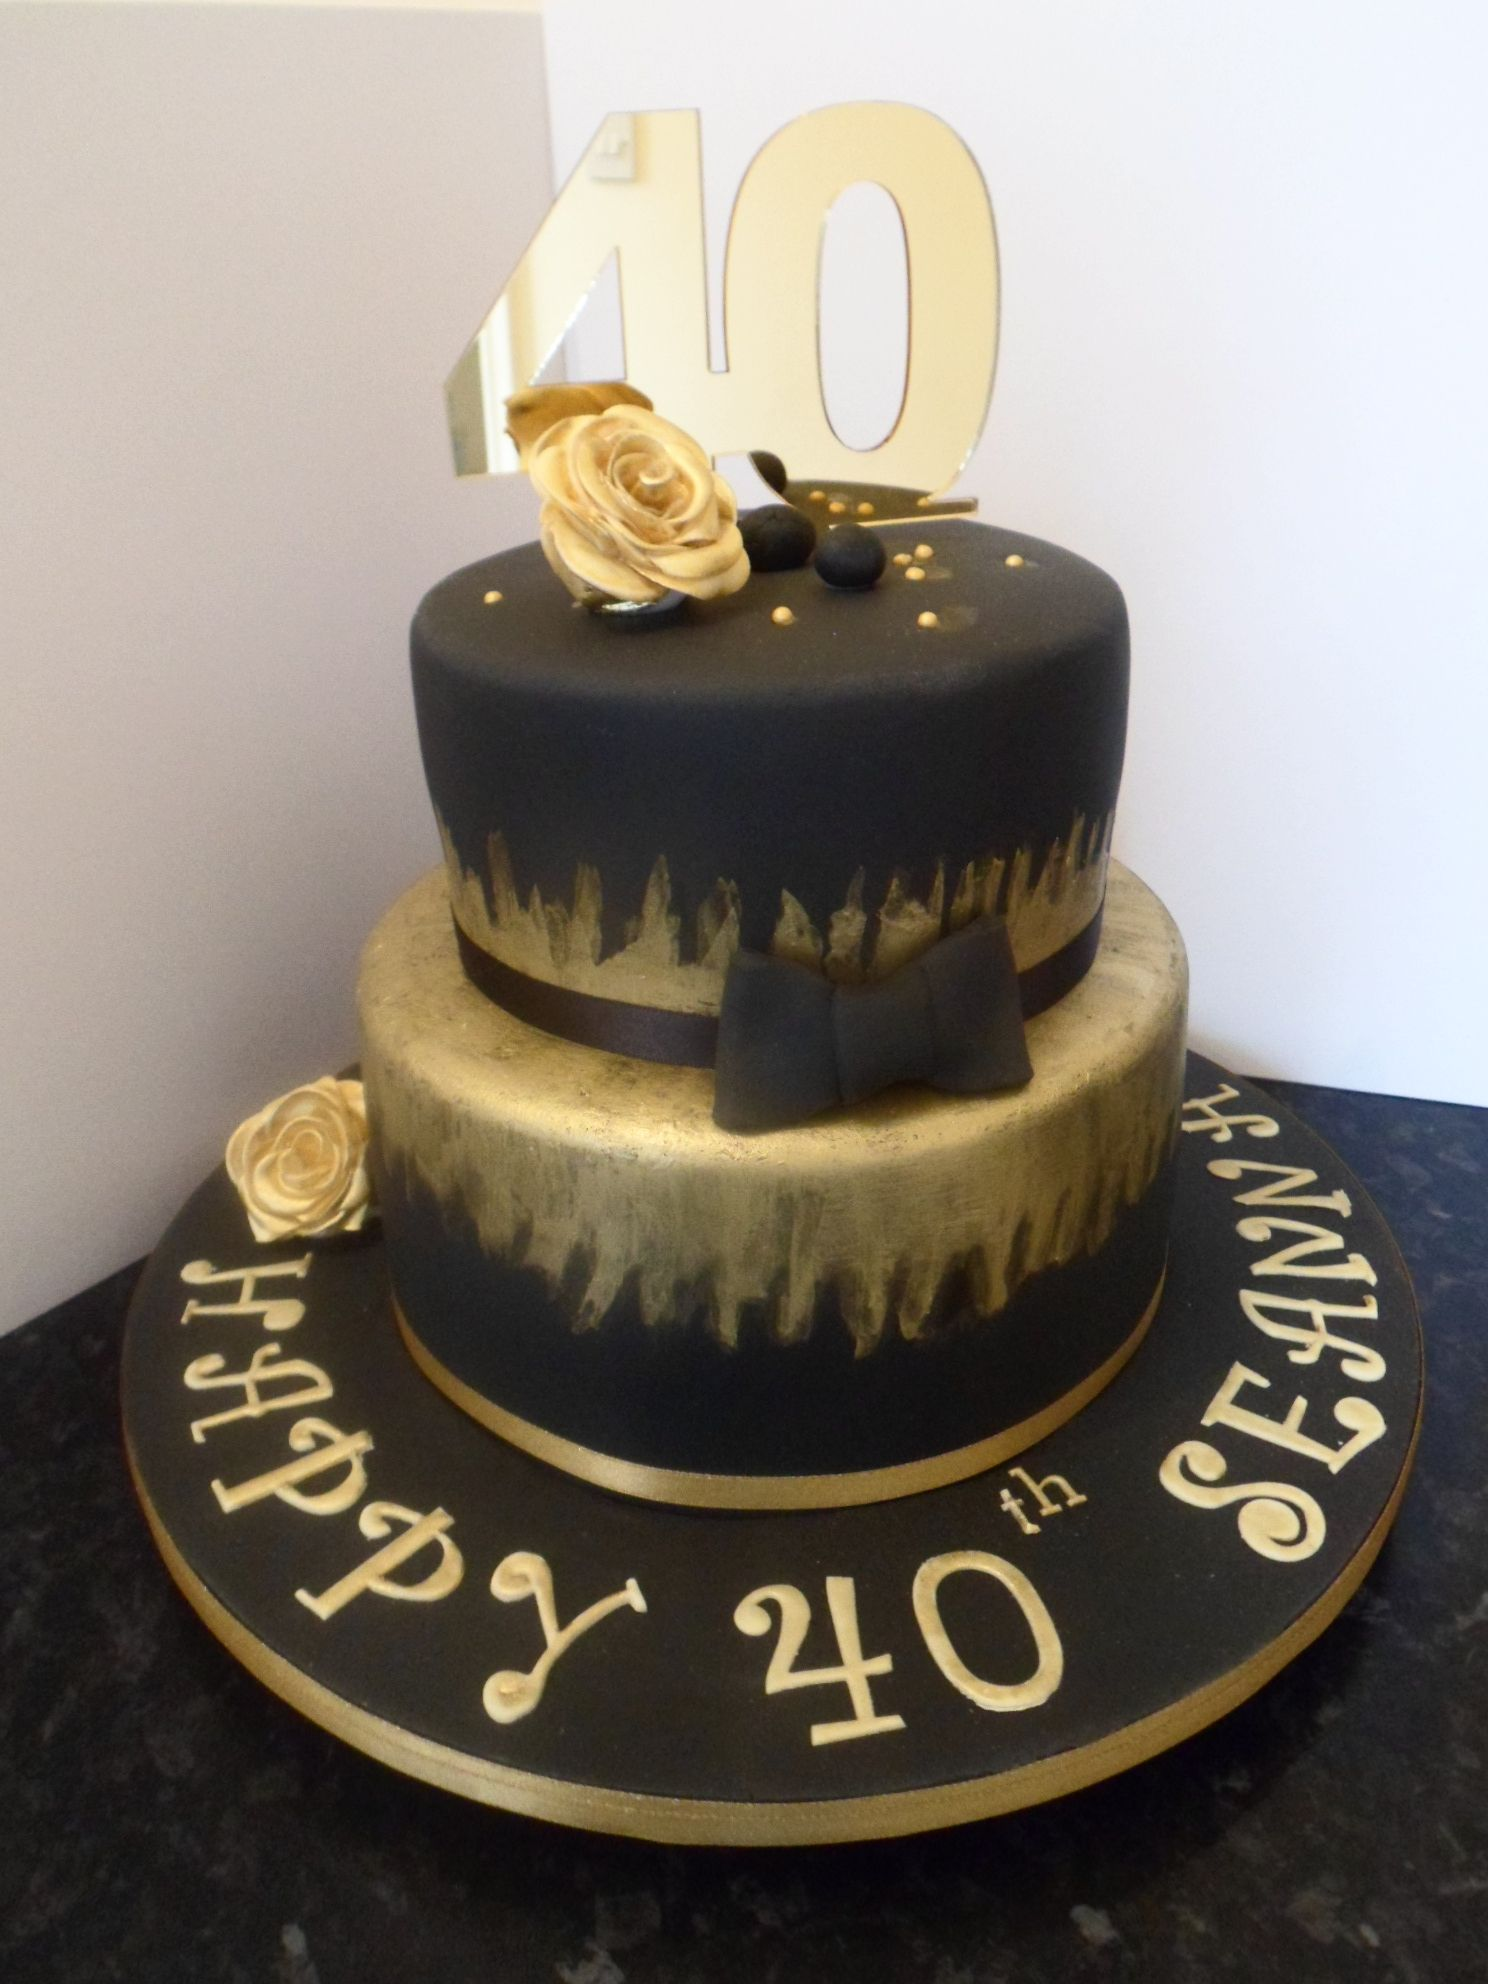 Terrific Black And Gold Themed Cake Perfect For Other Birthday Celebrations Funny Birthday Cards Online Overcheapnameinfo